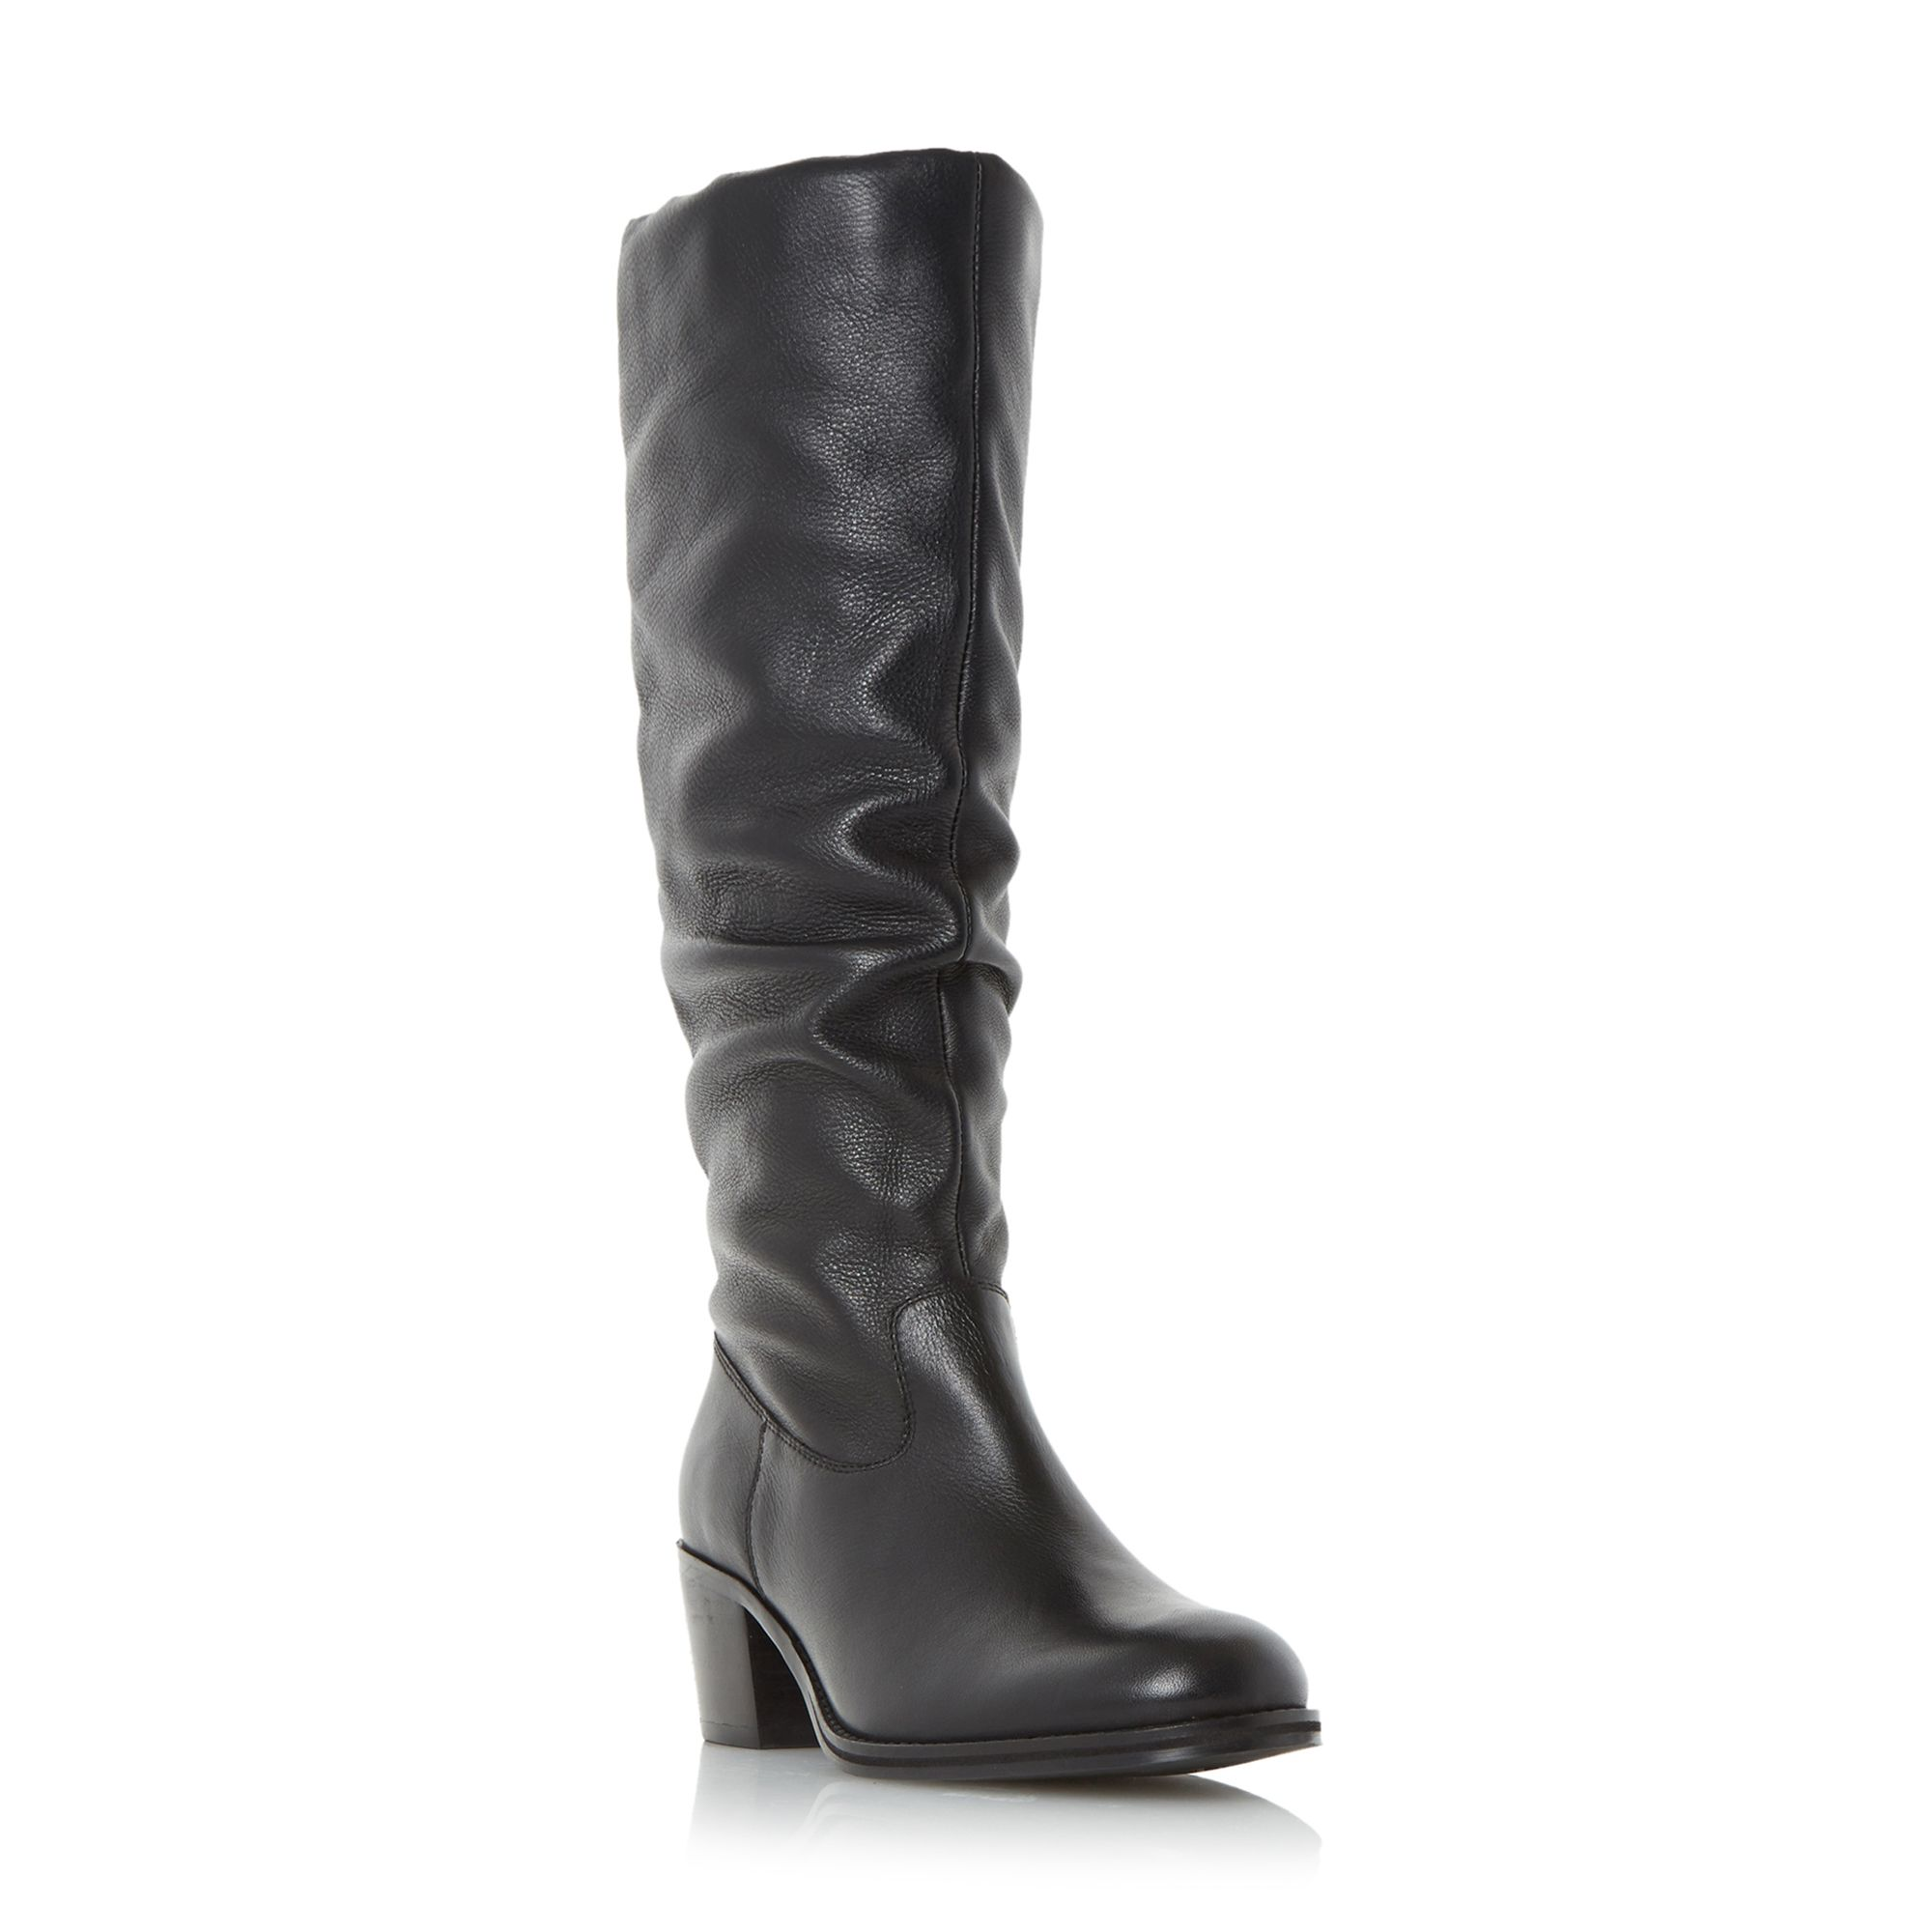 With countless styles to choose from, such as ankle, mid calf, knee high and thigh high boots. Flat boots are more comfortable but high heel boots are more fashionable. Flat boots are more comfortable but high heel boots are more fashionable.